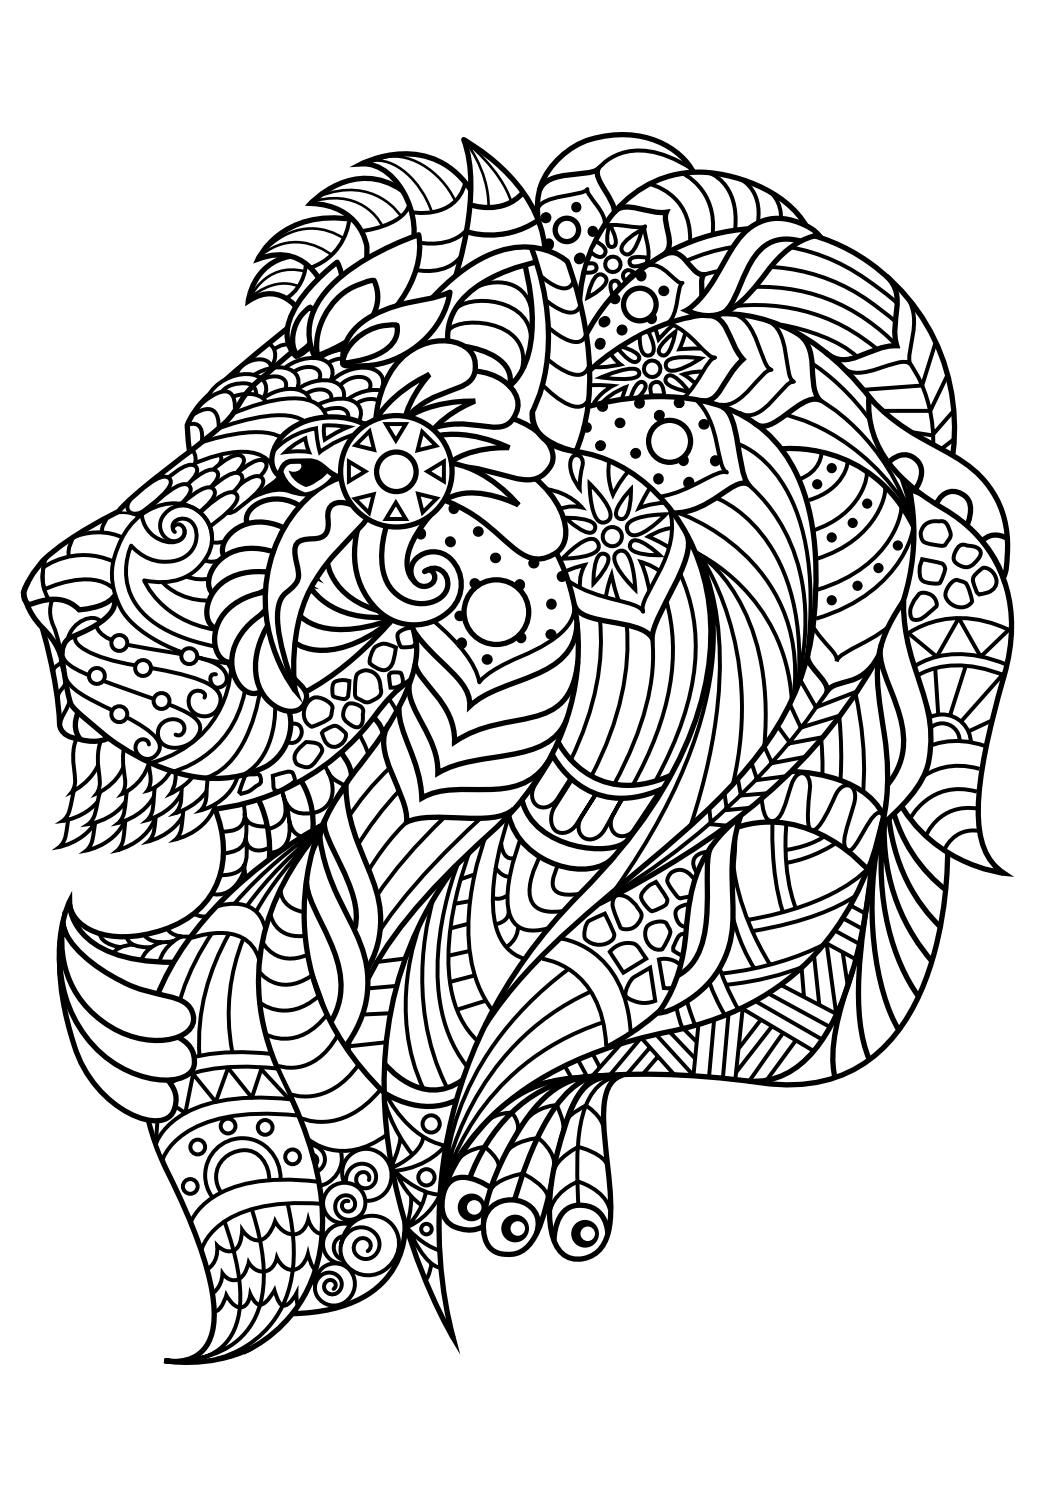 Animal coloring pages pdf Adult coloring, Coloring books